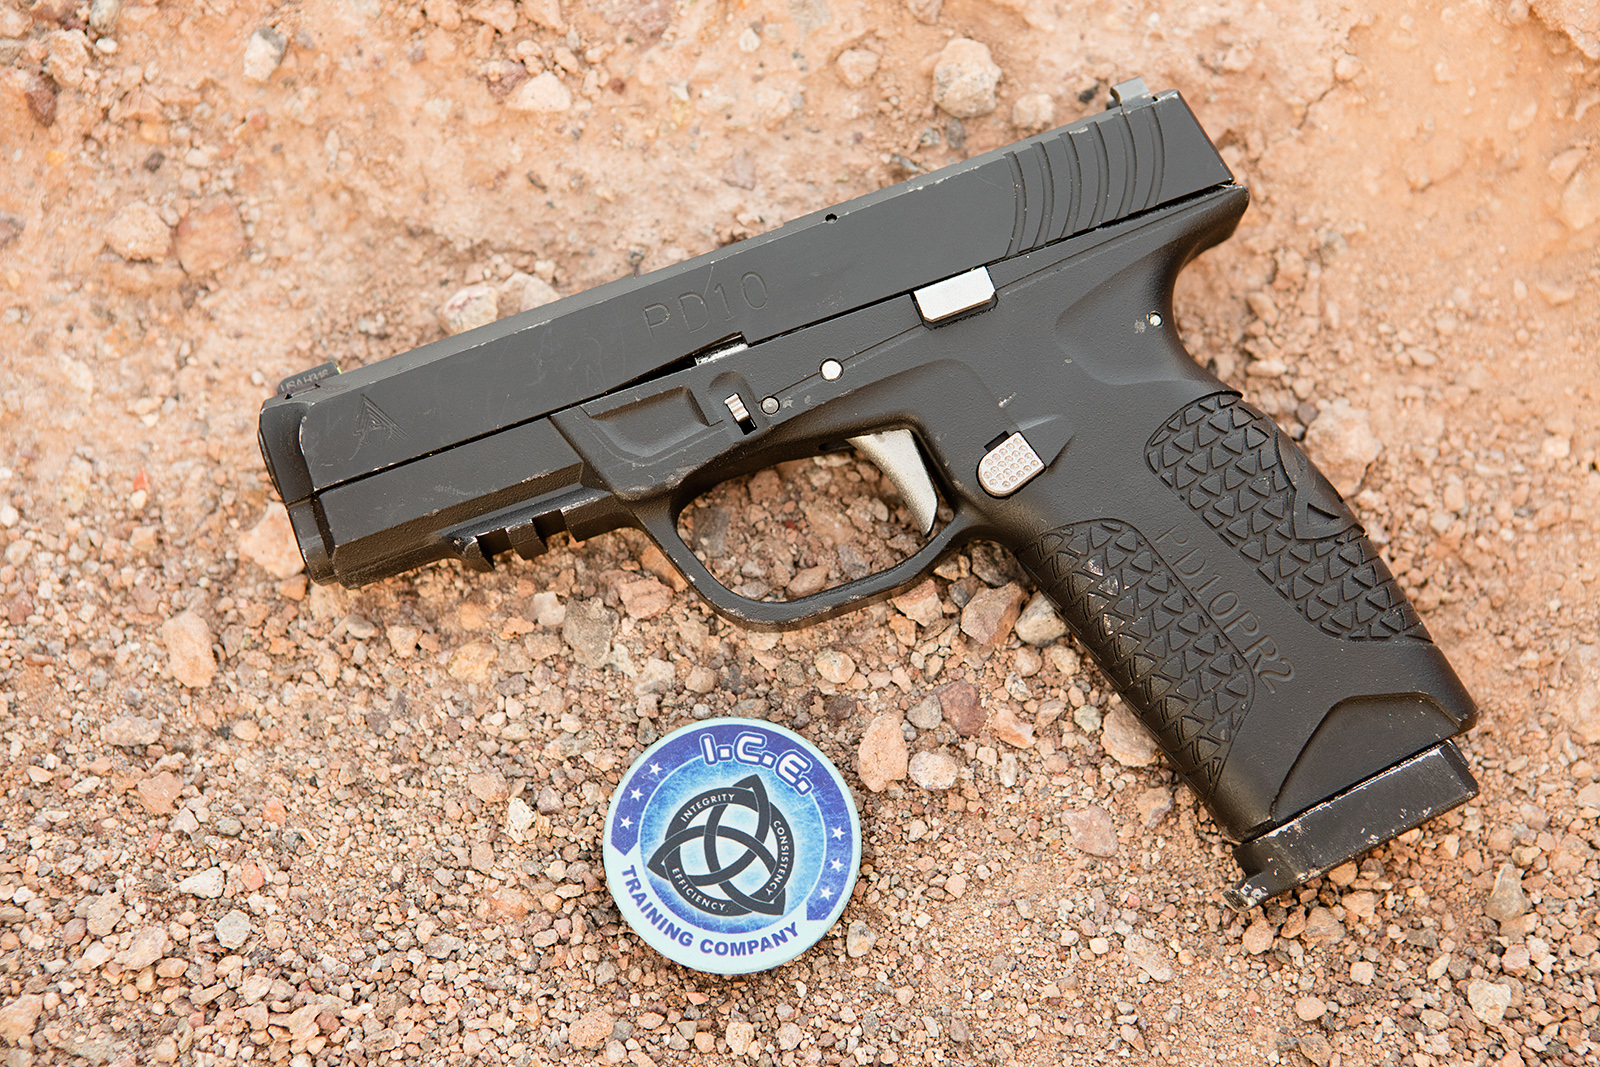 First Look: Avidity Arms PD10